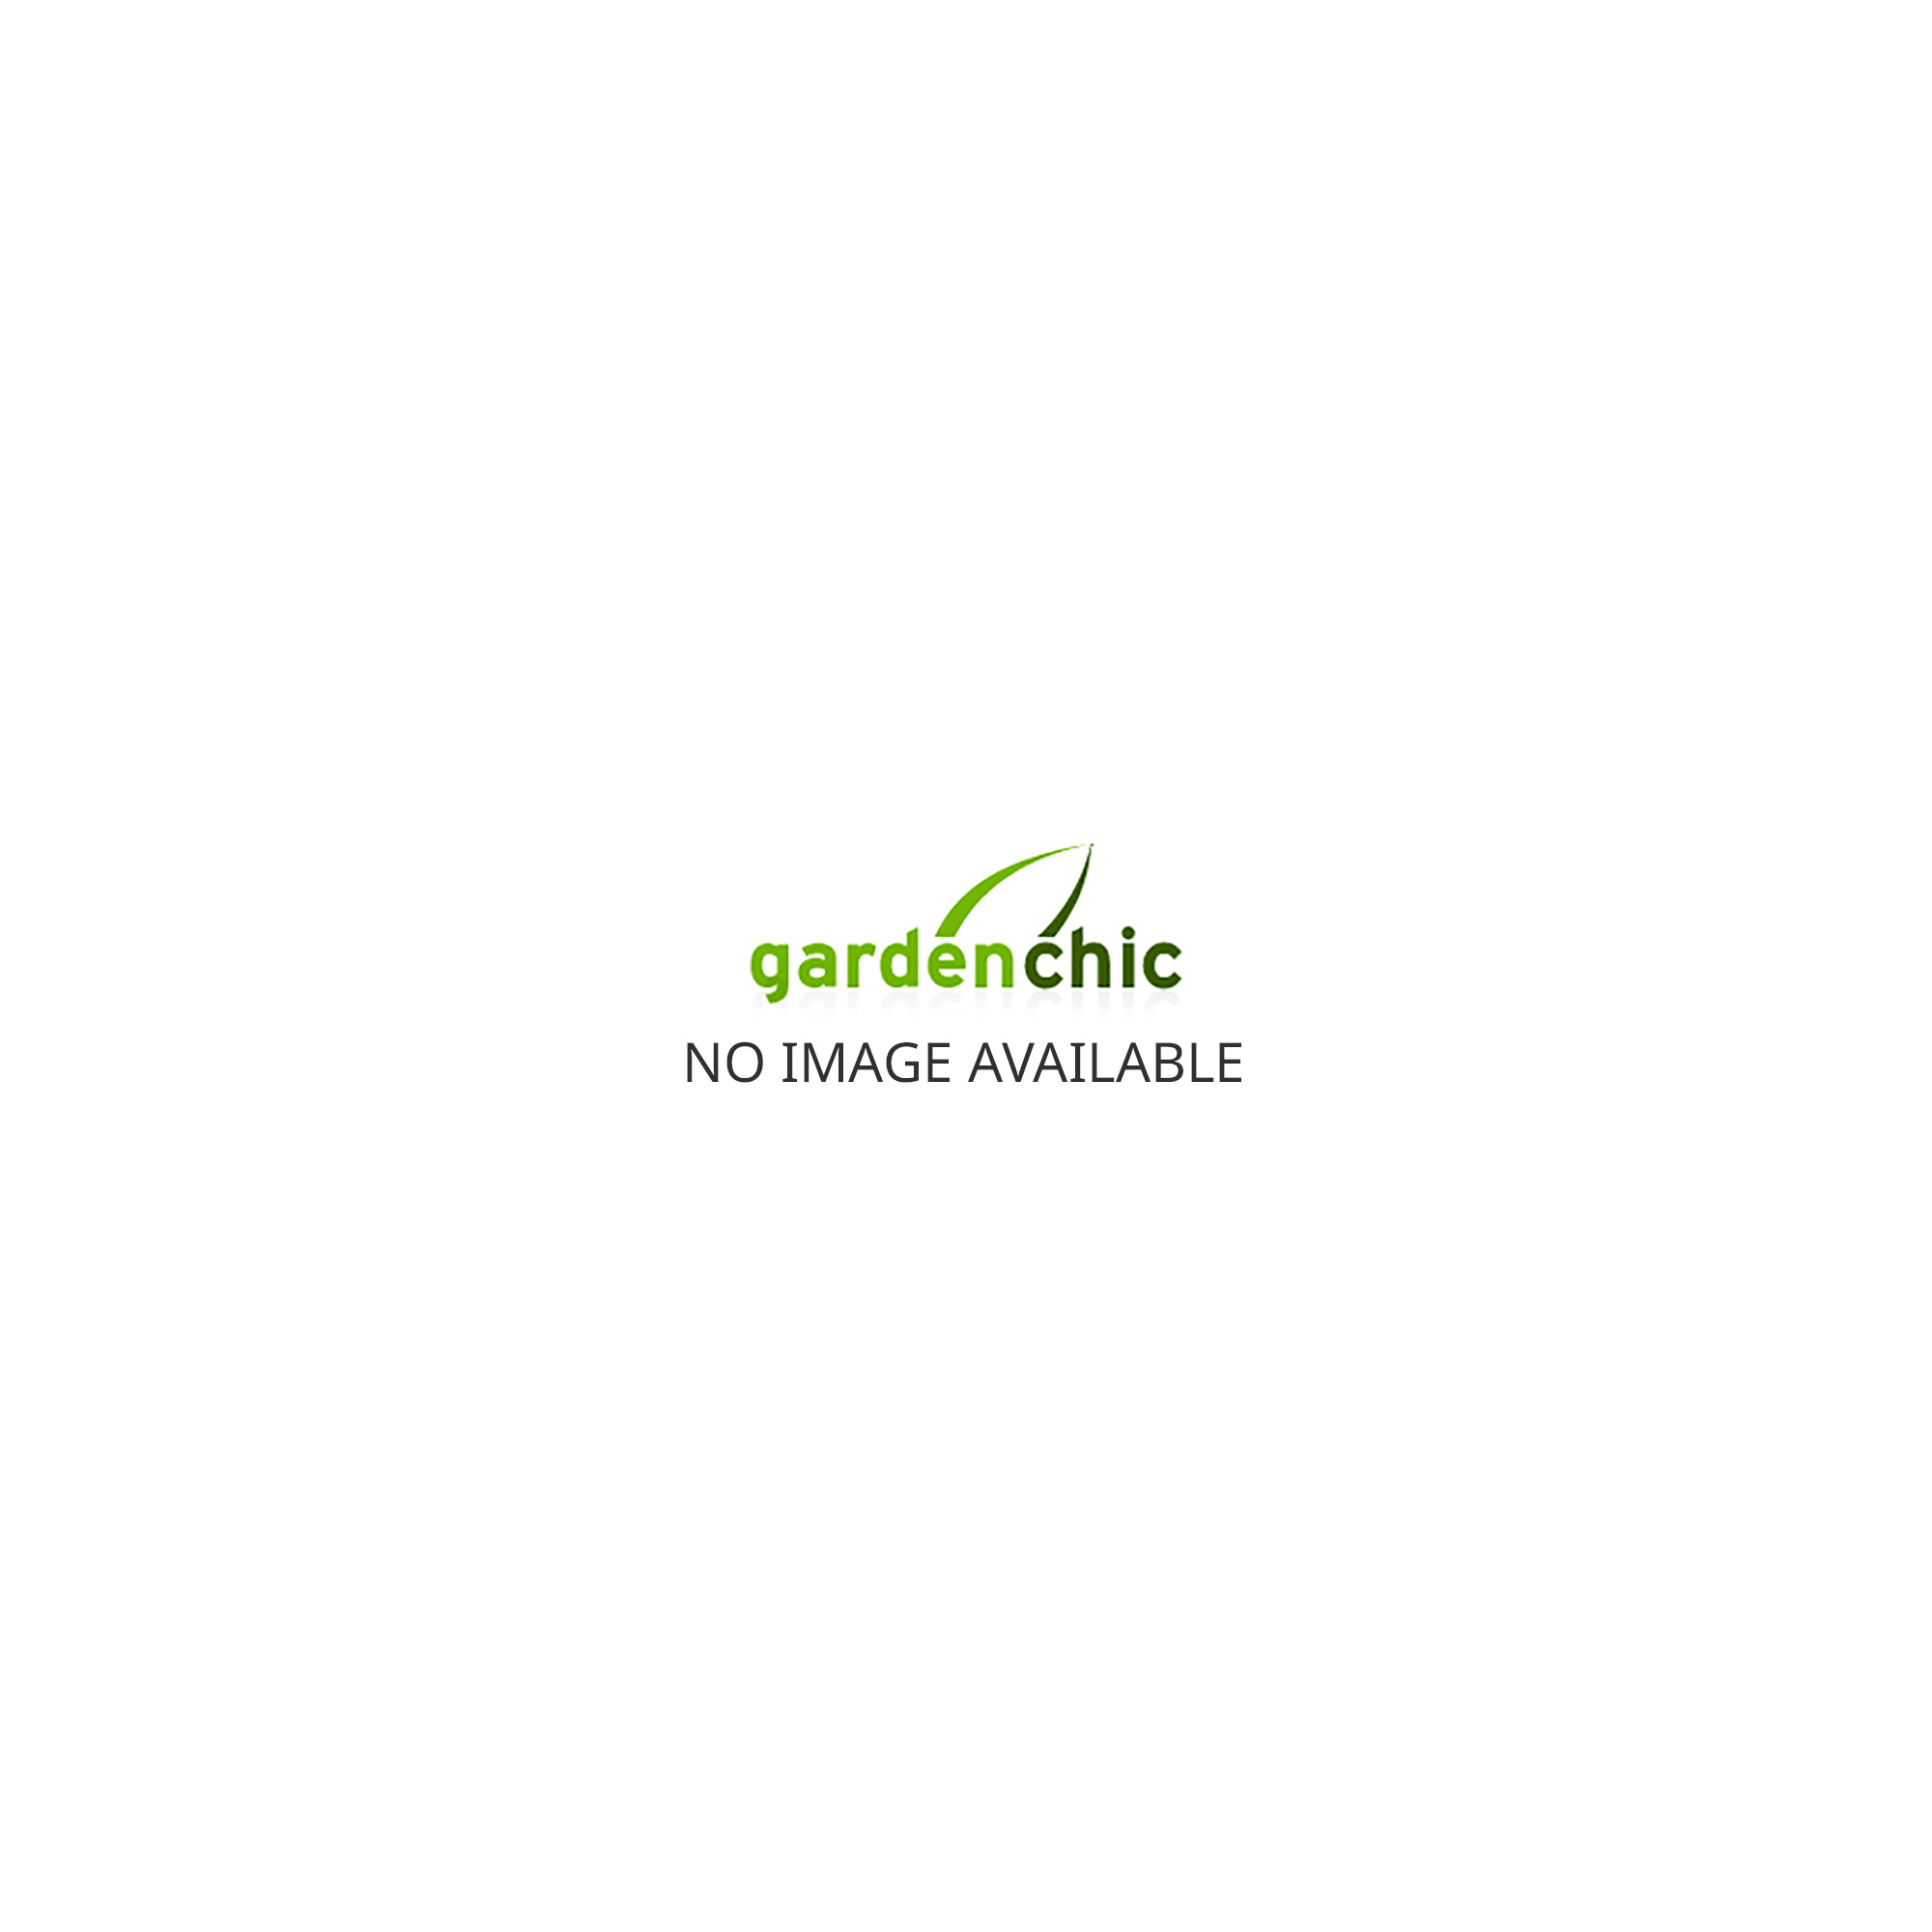 Venus 5000 8ft x 6ft Greenhouse - Silver FREE Matching Base until APRIL 2018